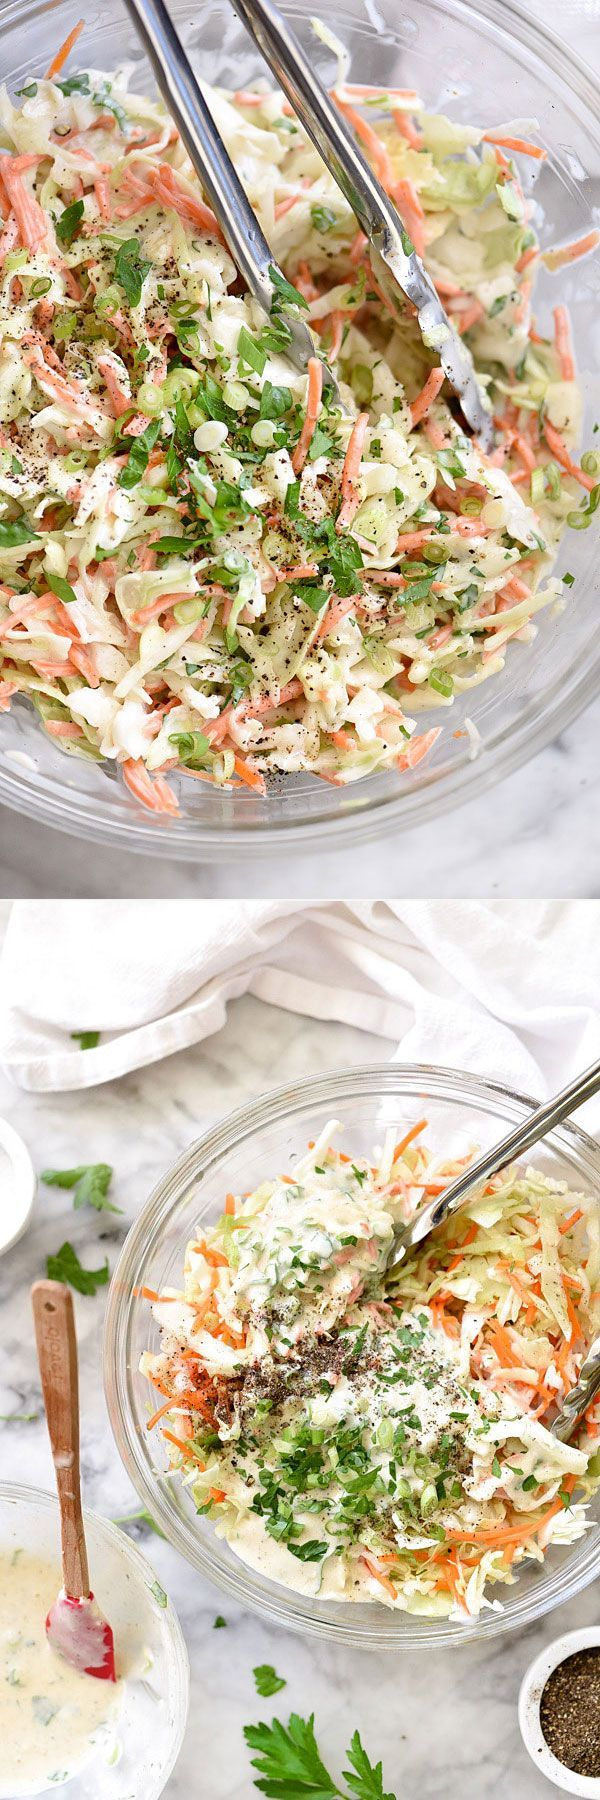 It's not soupy, it's not goopy. It's simply the best coleslaw I've made yet on http://foodiecrush.com